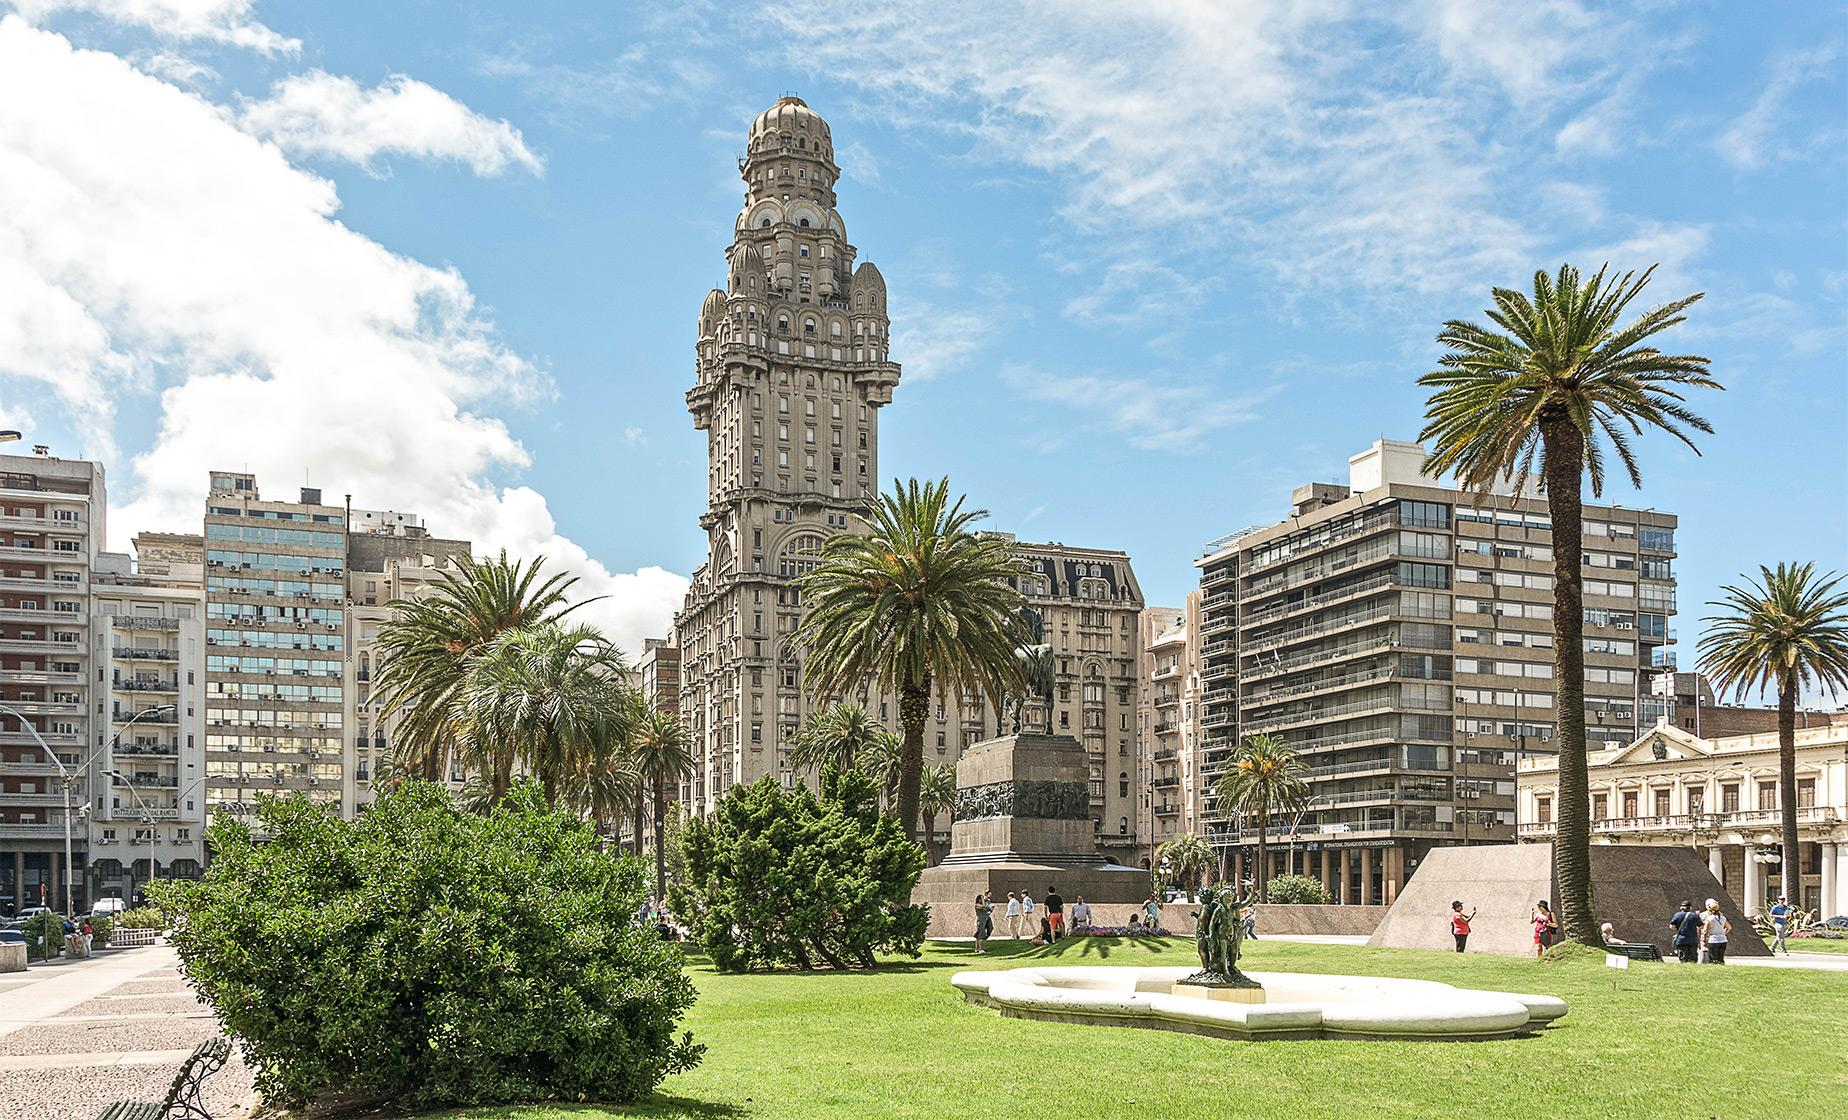 Exclusive Best of Montevideo Tour (Old Town, Port Market, Parliament Palace and the Rambla)